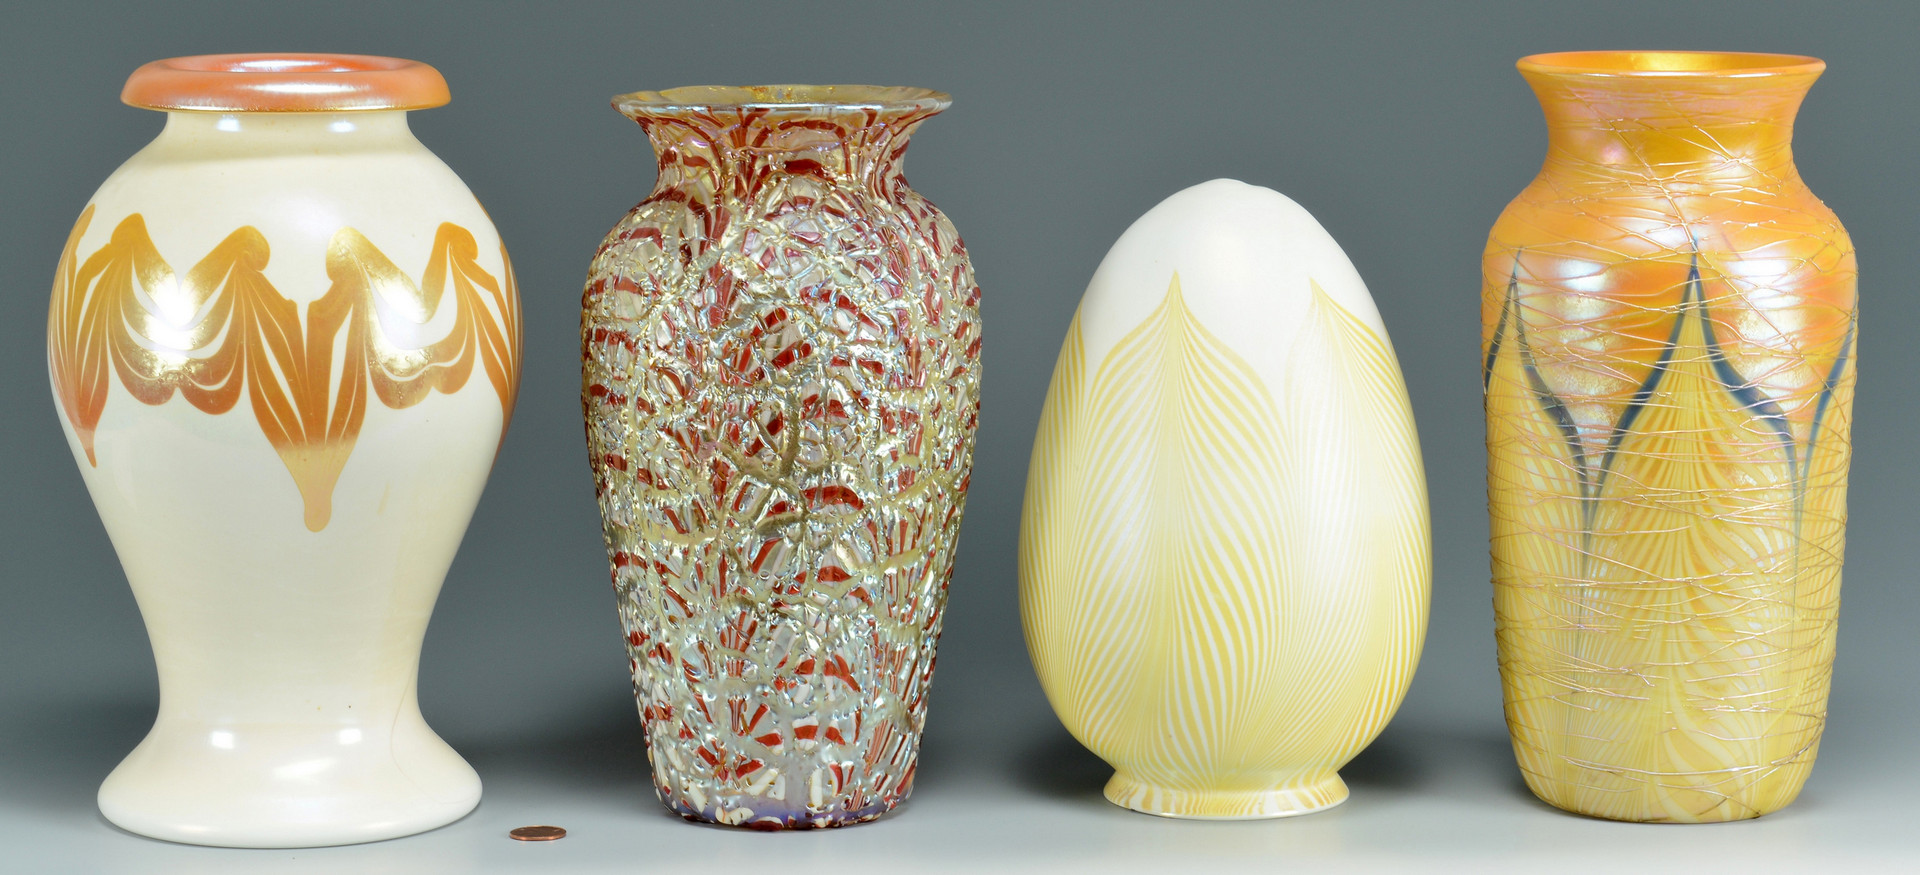 Lot 235: 4 Durand Art Glass Items, 3 vases